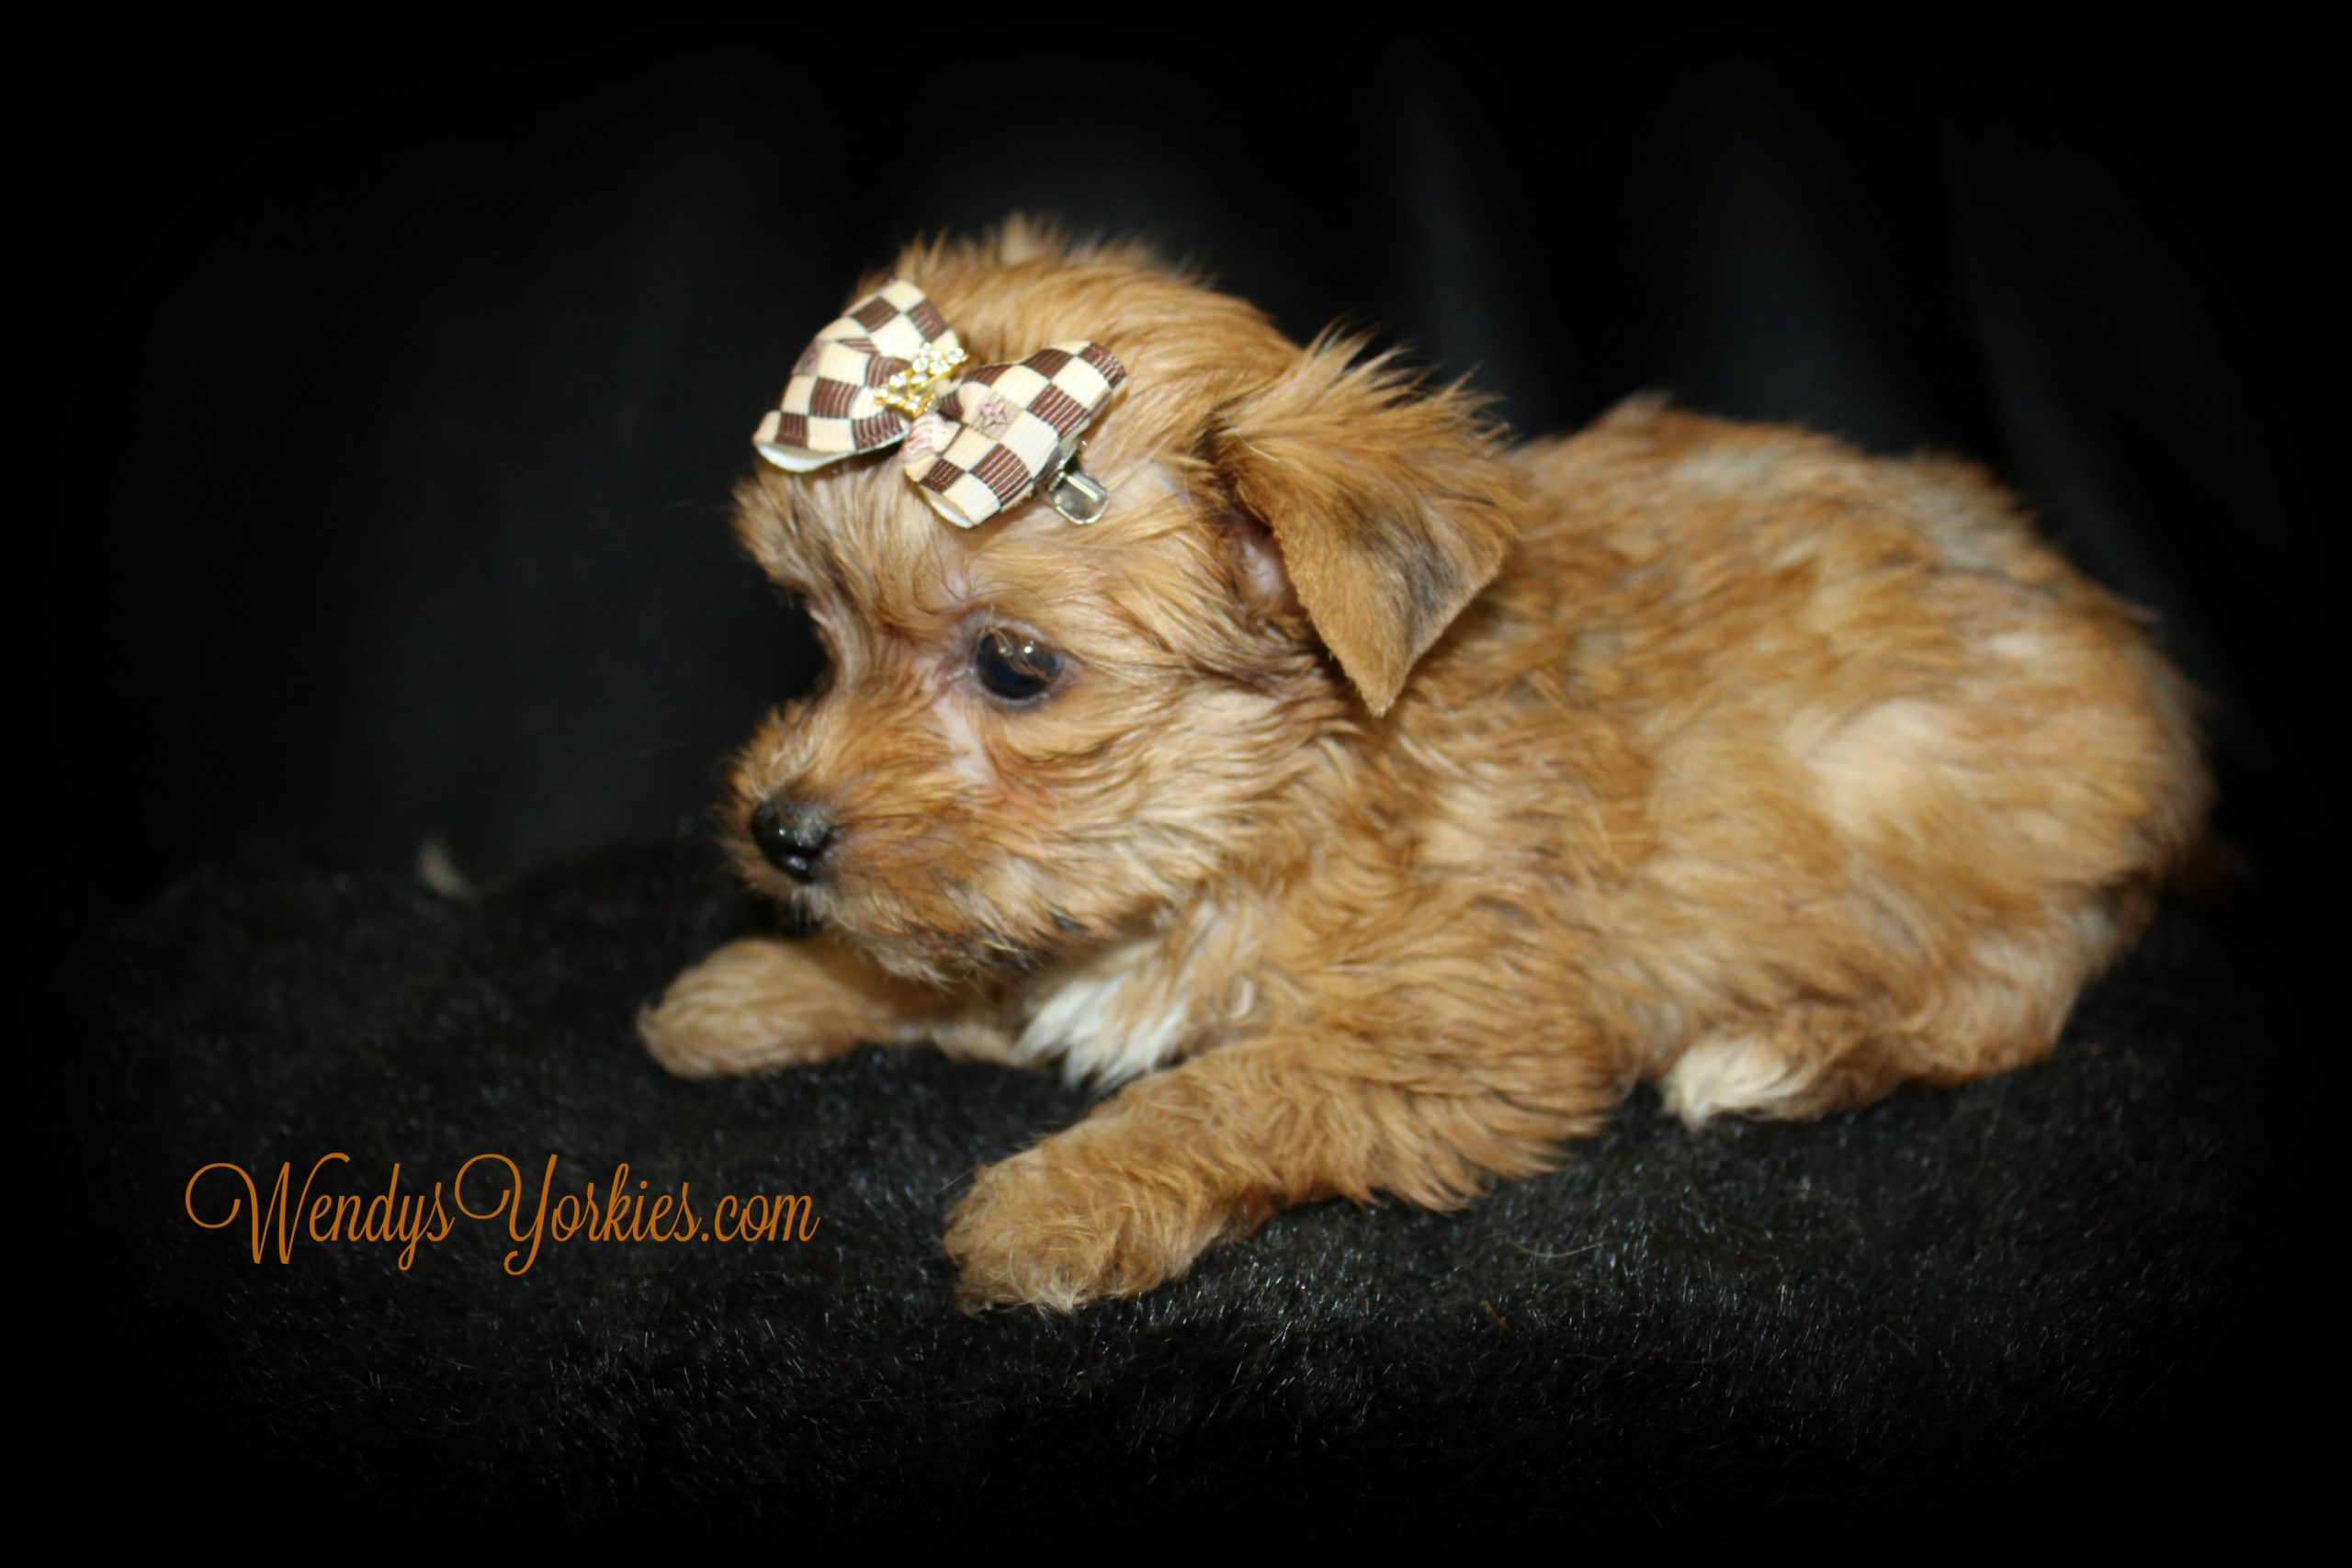 Tiny Blonde Yorkie puppy, Legend, WendysYorkies.com